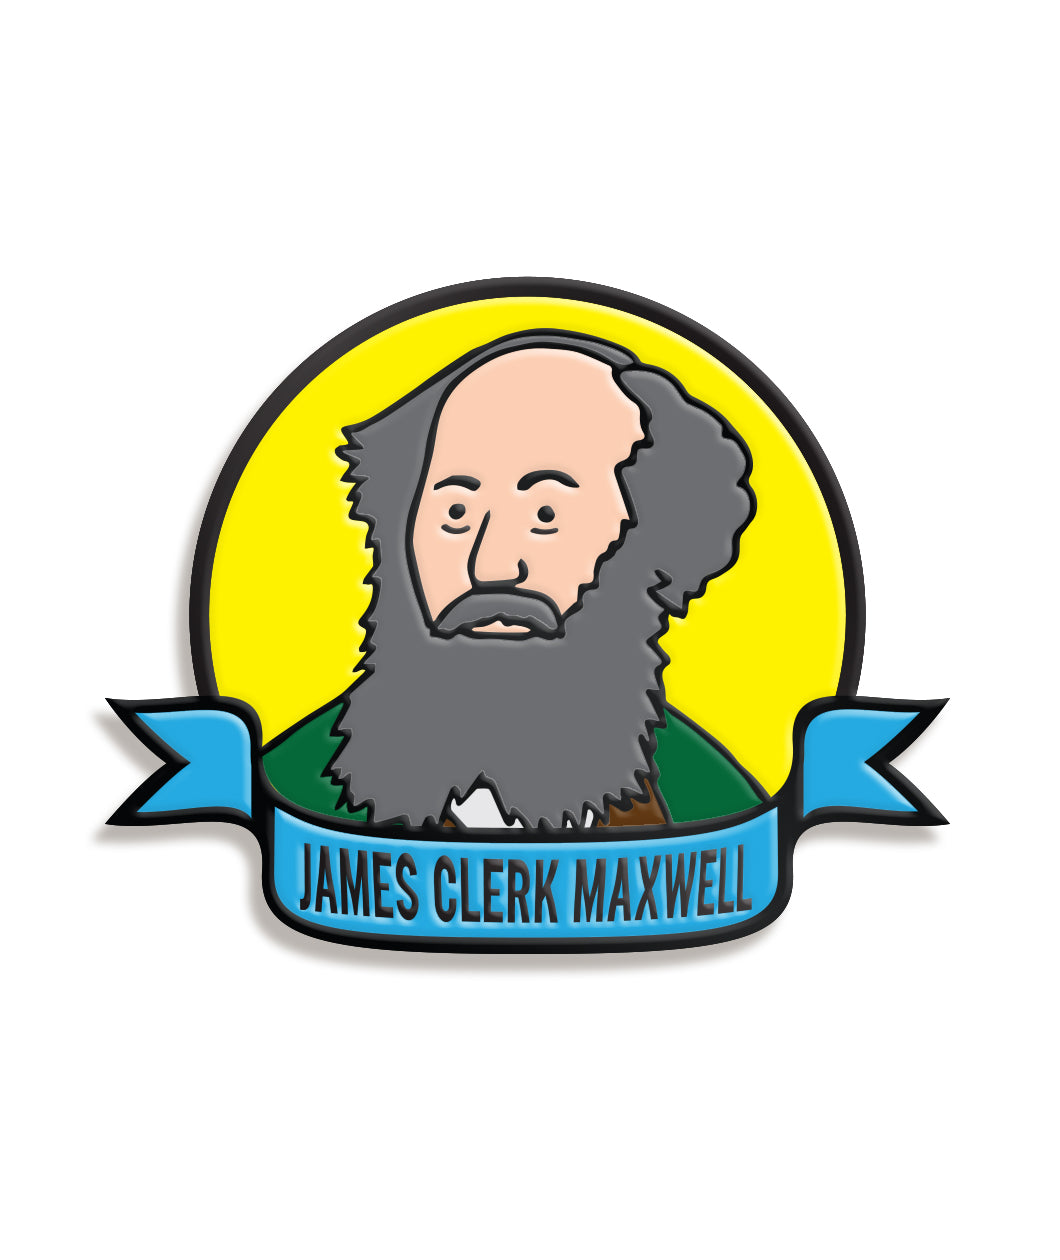 James Clerk Maxwell Enamel Pin